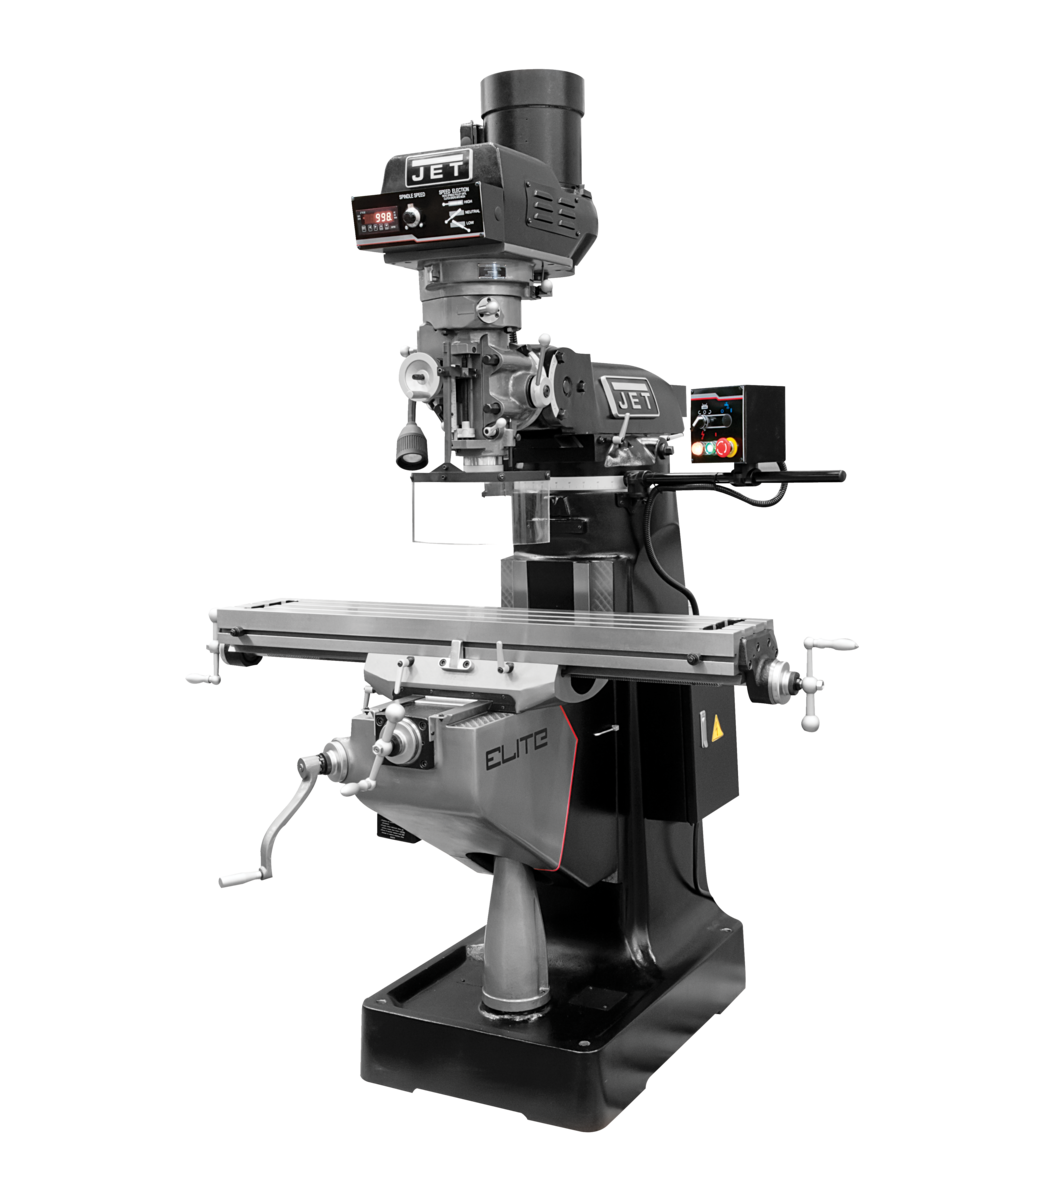 EVS-949 Mill with 3-Axis ACU-RITE 203 (Quill) DRO and X-Axis JET Powerfeed